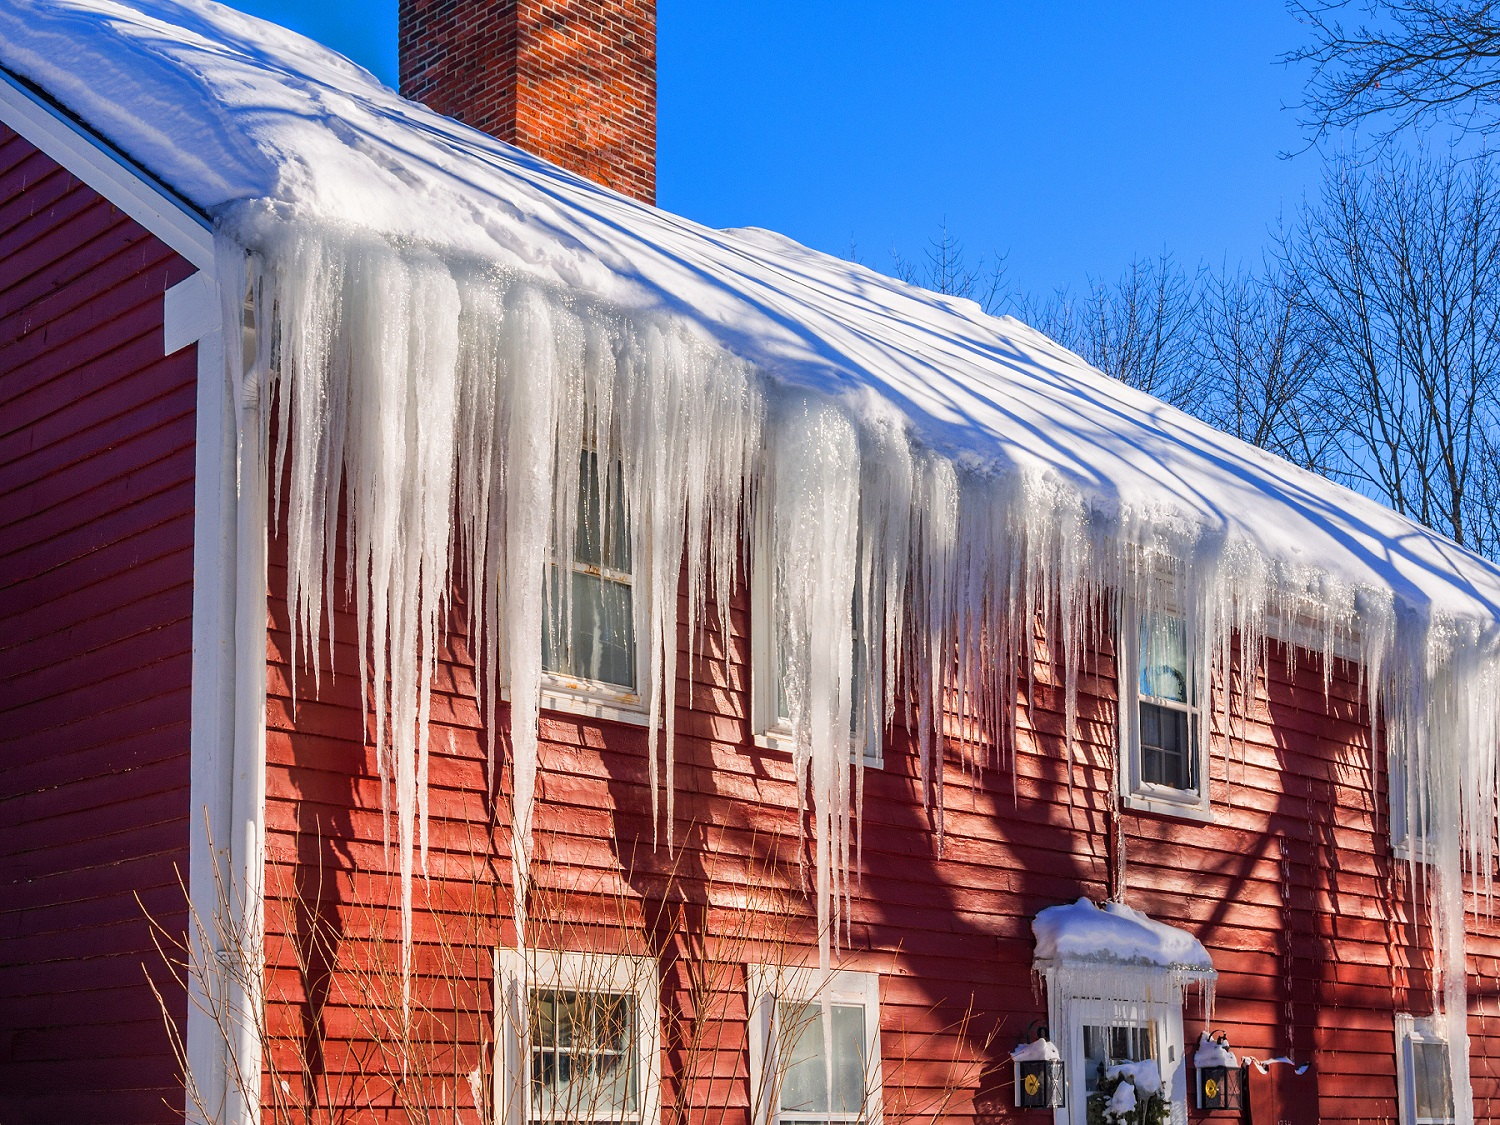 Icicles can damage seamless gutters